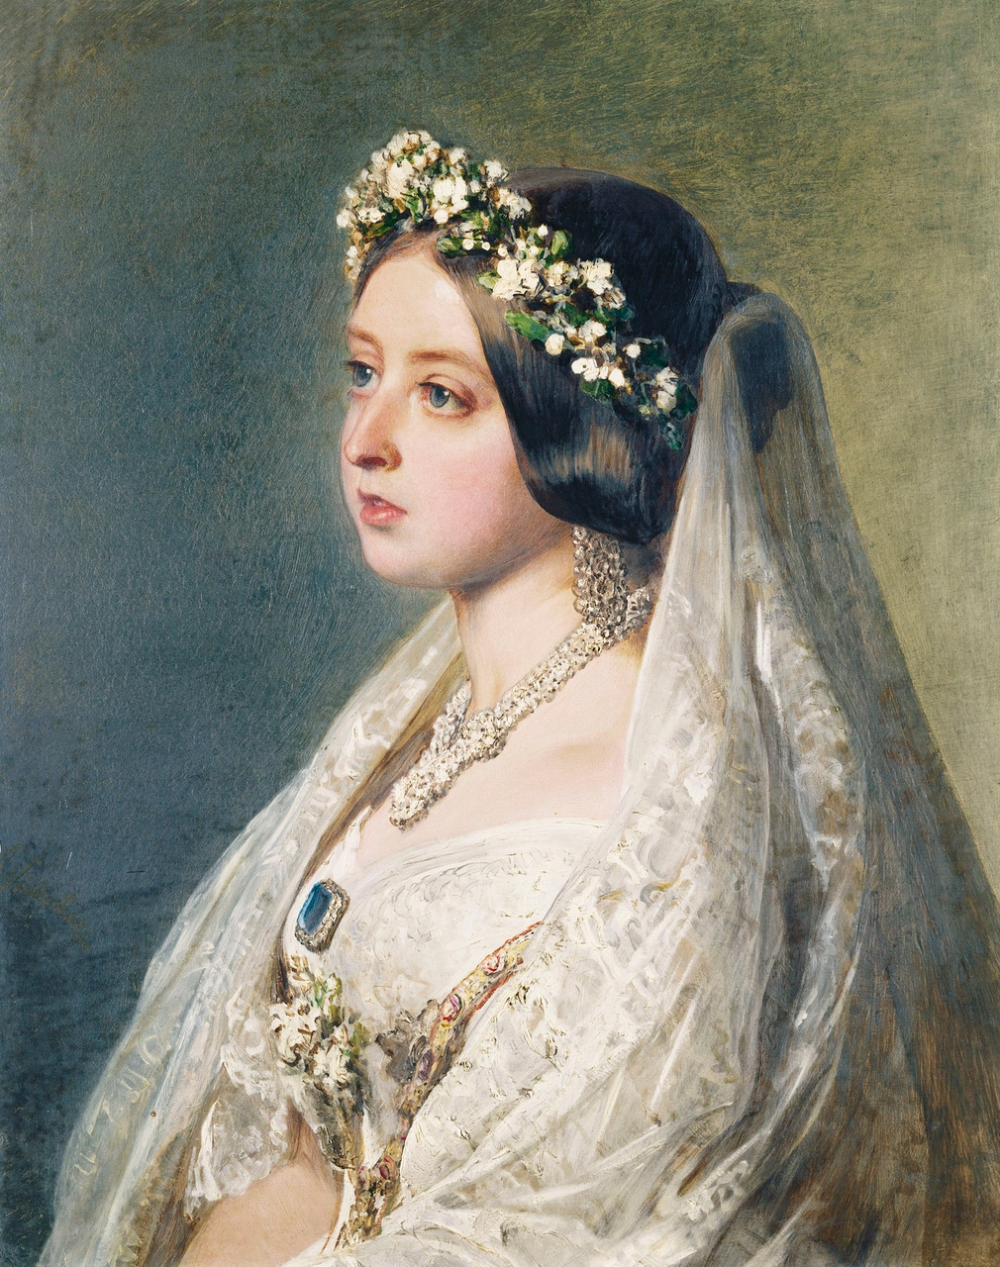 The Crown Chronicles On Twitter In 2021 Queen Victoria Wedding Queen Victoria Wedding Dress Victoria Wedding Dress [ 1267 x 1000 Pixel ]